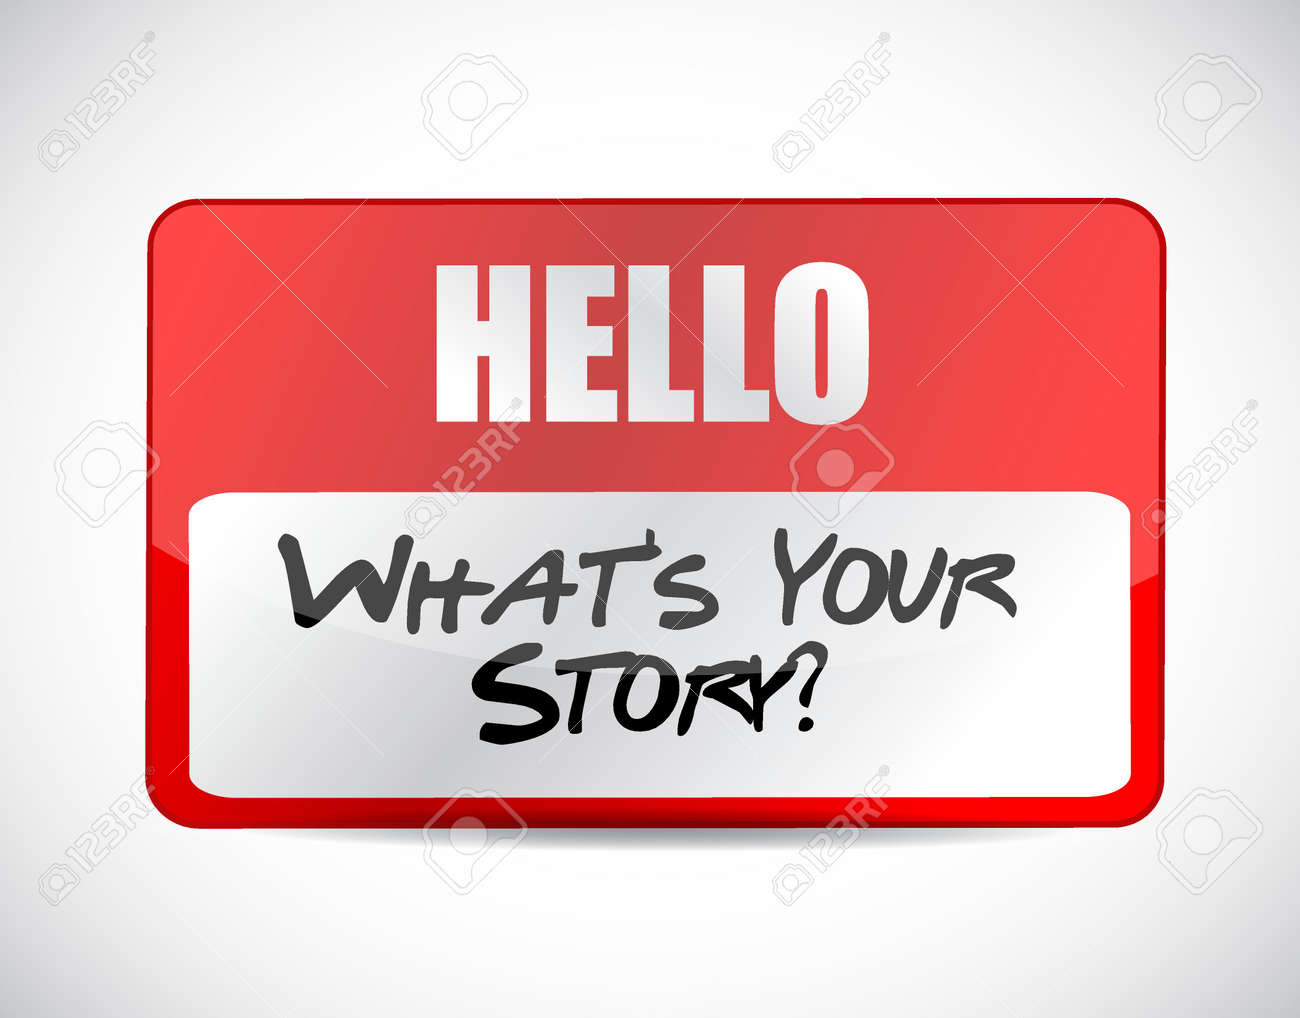 whats your story name tag sign concept illustration design graphic